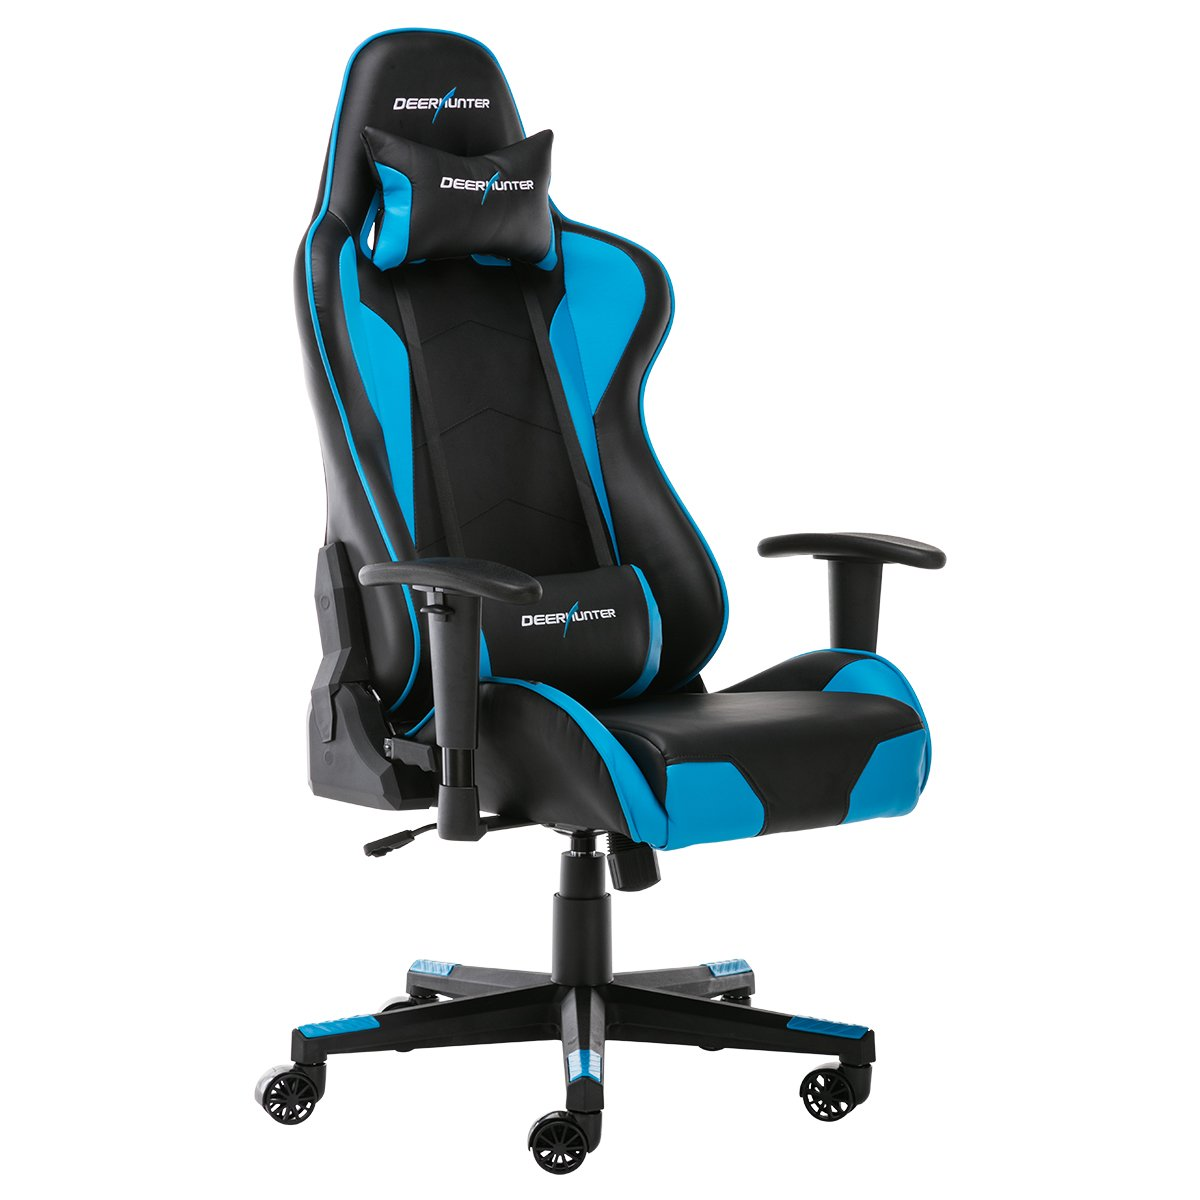 Deerhunter Gaming Chair, Leather Office Chair, High Back Ergonomic Racing Chair, Adjustable Computer Desk Swivel Chair with Headrest and Lumbar Support (Blue&Black)